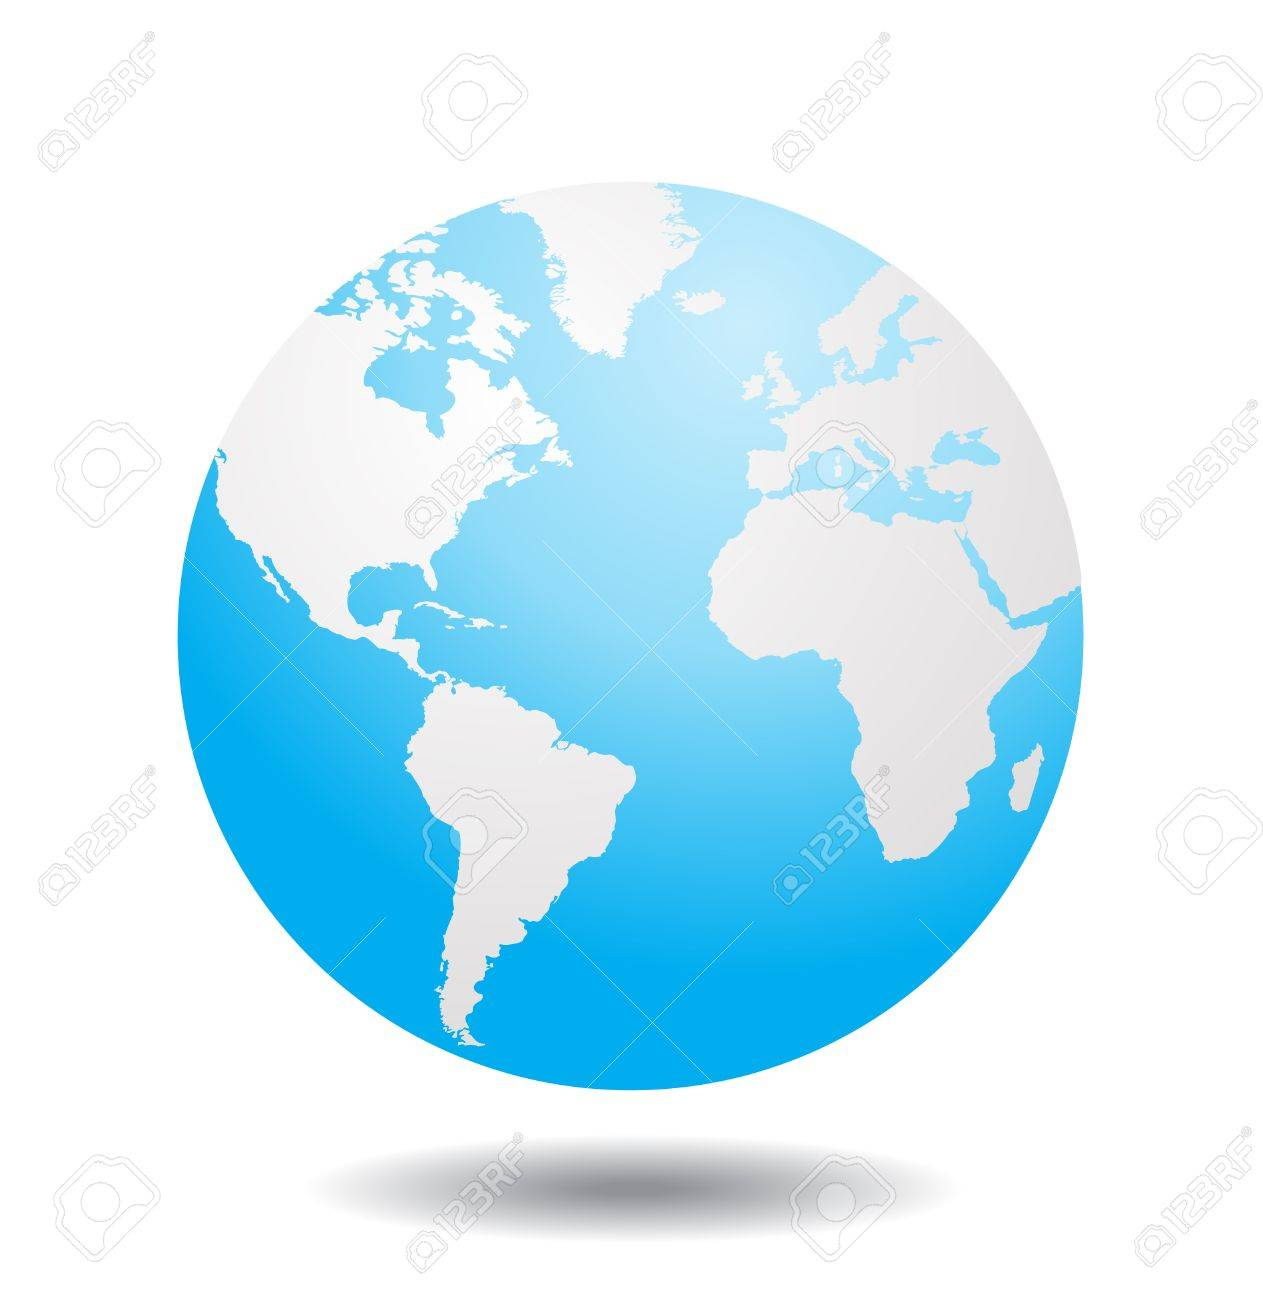 world globe vector royalty free cliparts vectors and stock rh 123rf com world globe vector free download world globe vector art